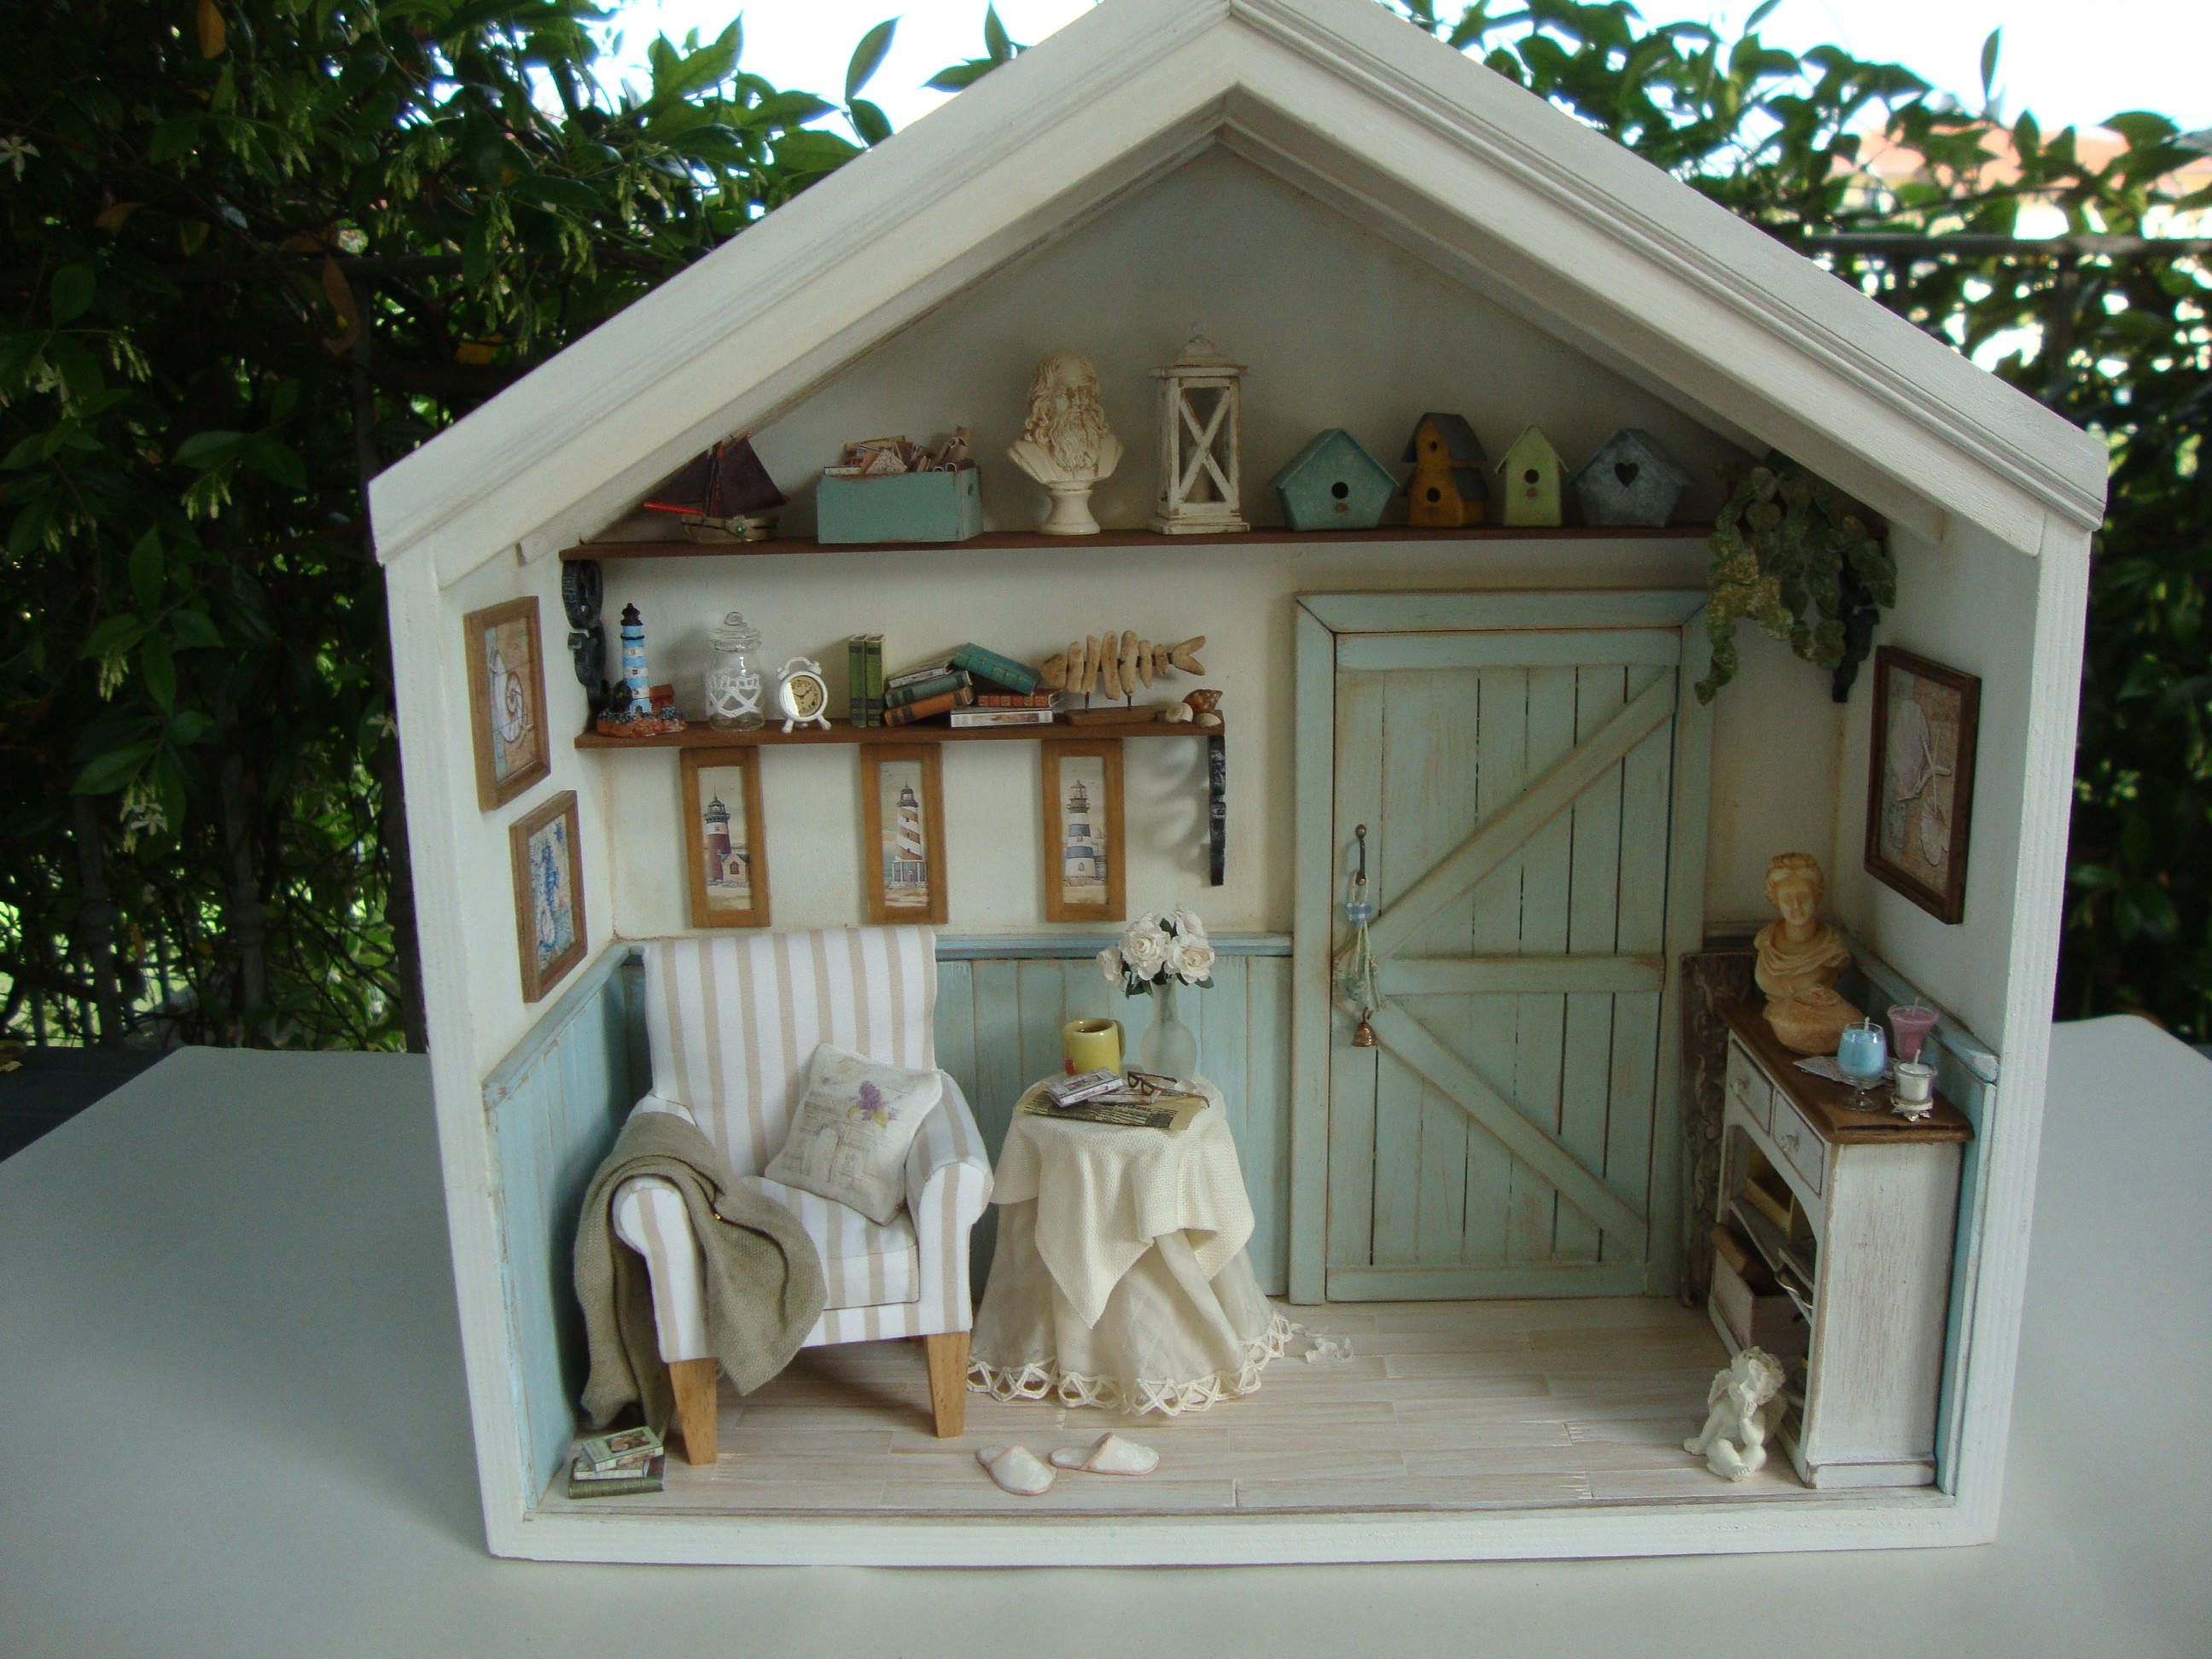 Room Box Scale 1 12 One Of A Kind In 2020 Room Box Room Box Miniatures Doll House Plans